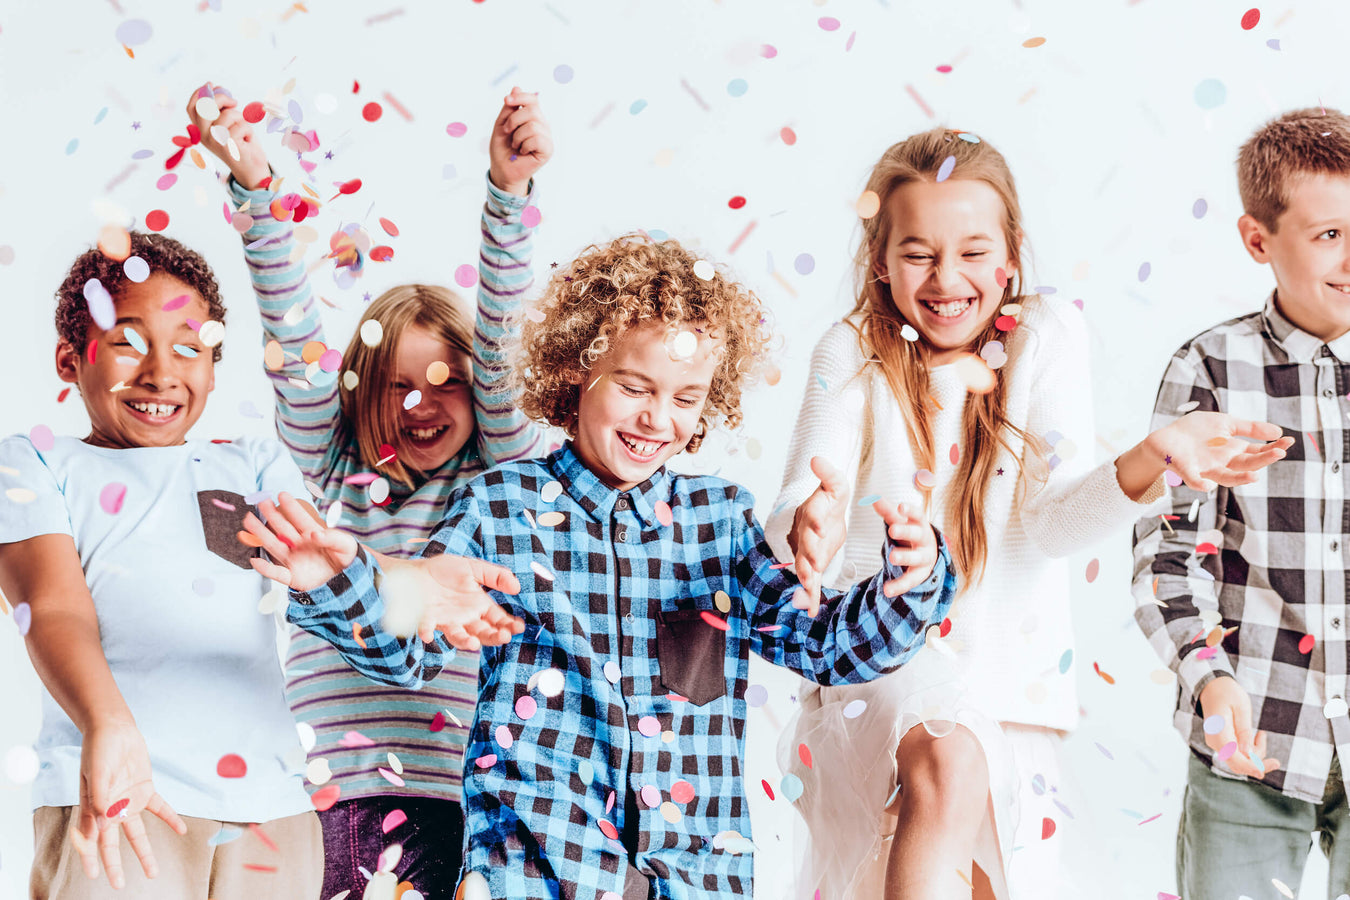 Kids wearing stylish second hand outfits throw confetti in the air to get the party started